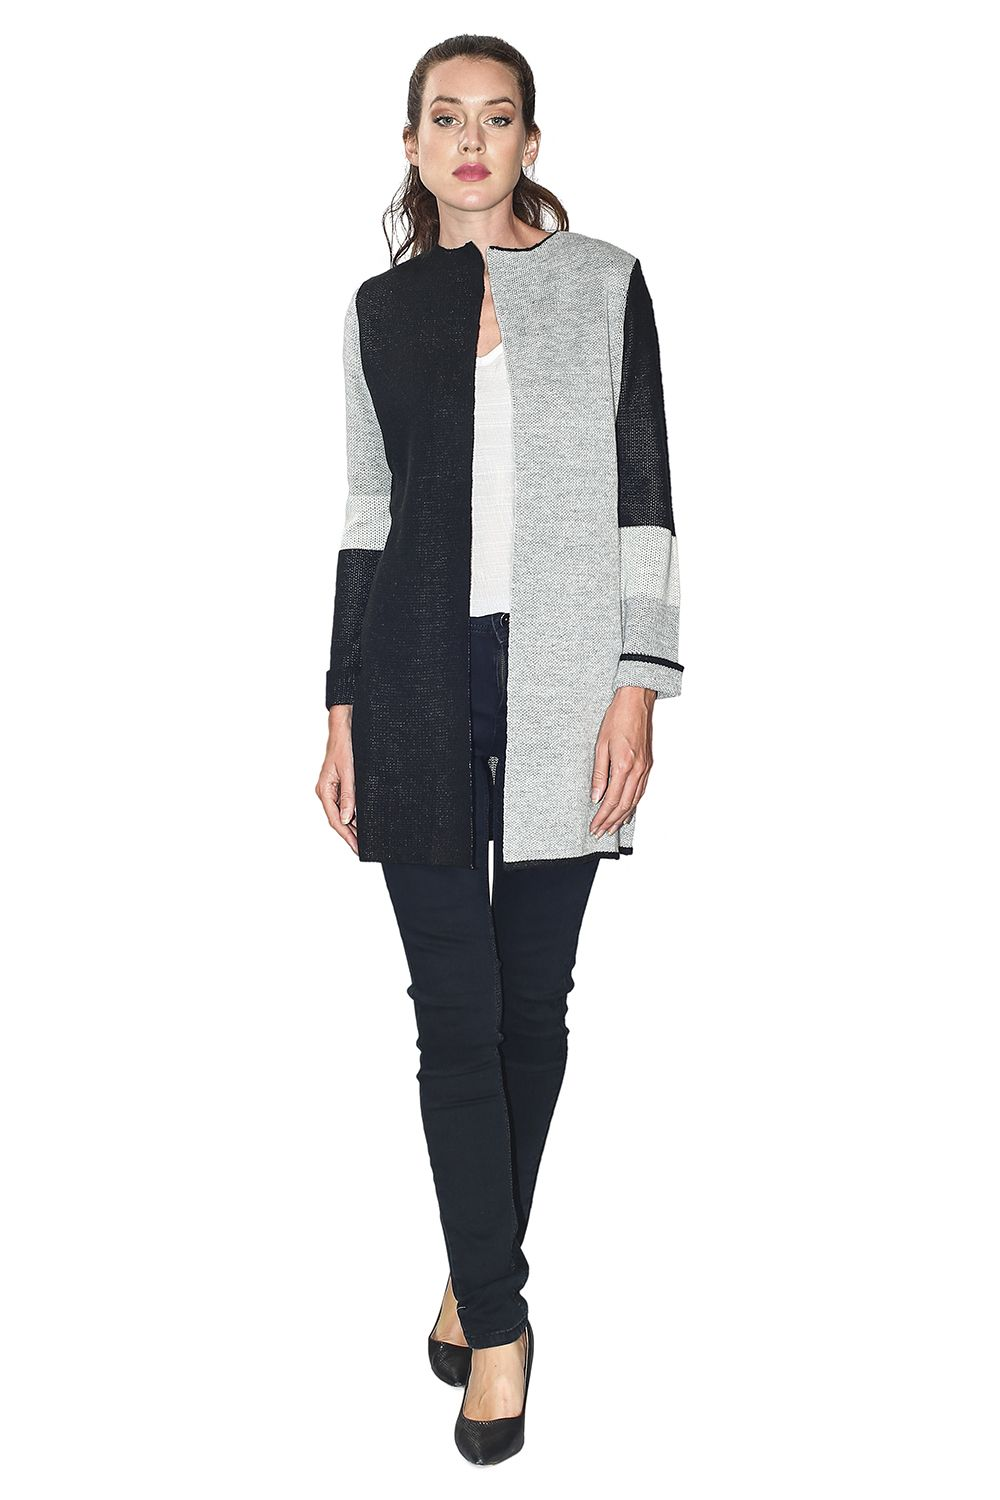 Assuili Long Sleeve Jacquard Patterned Cardigan with Aviator Sleeves and Pockets in Black